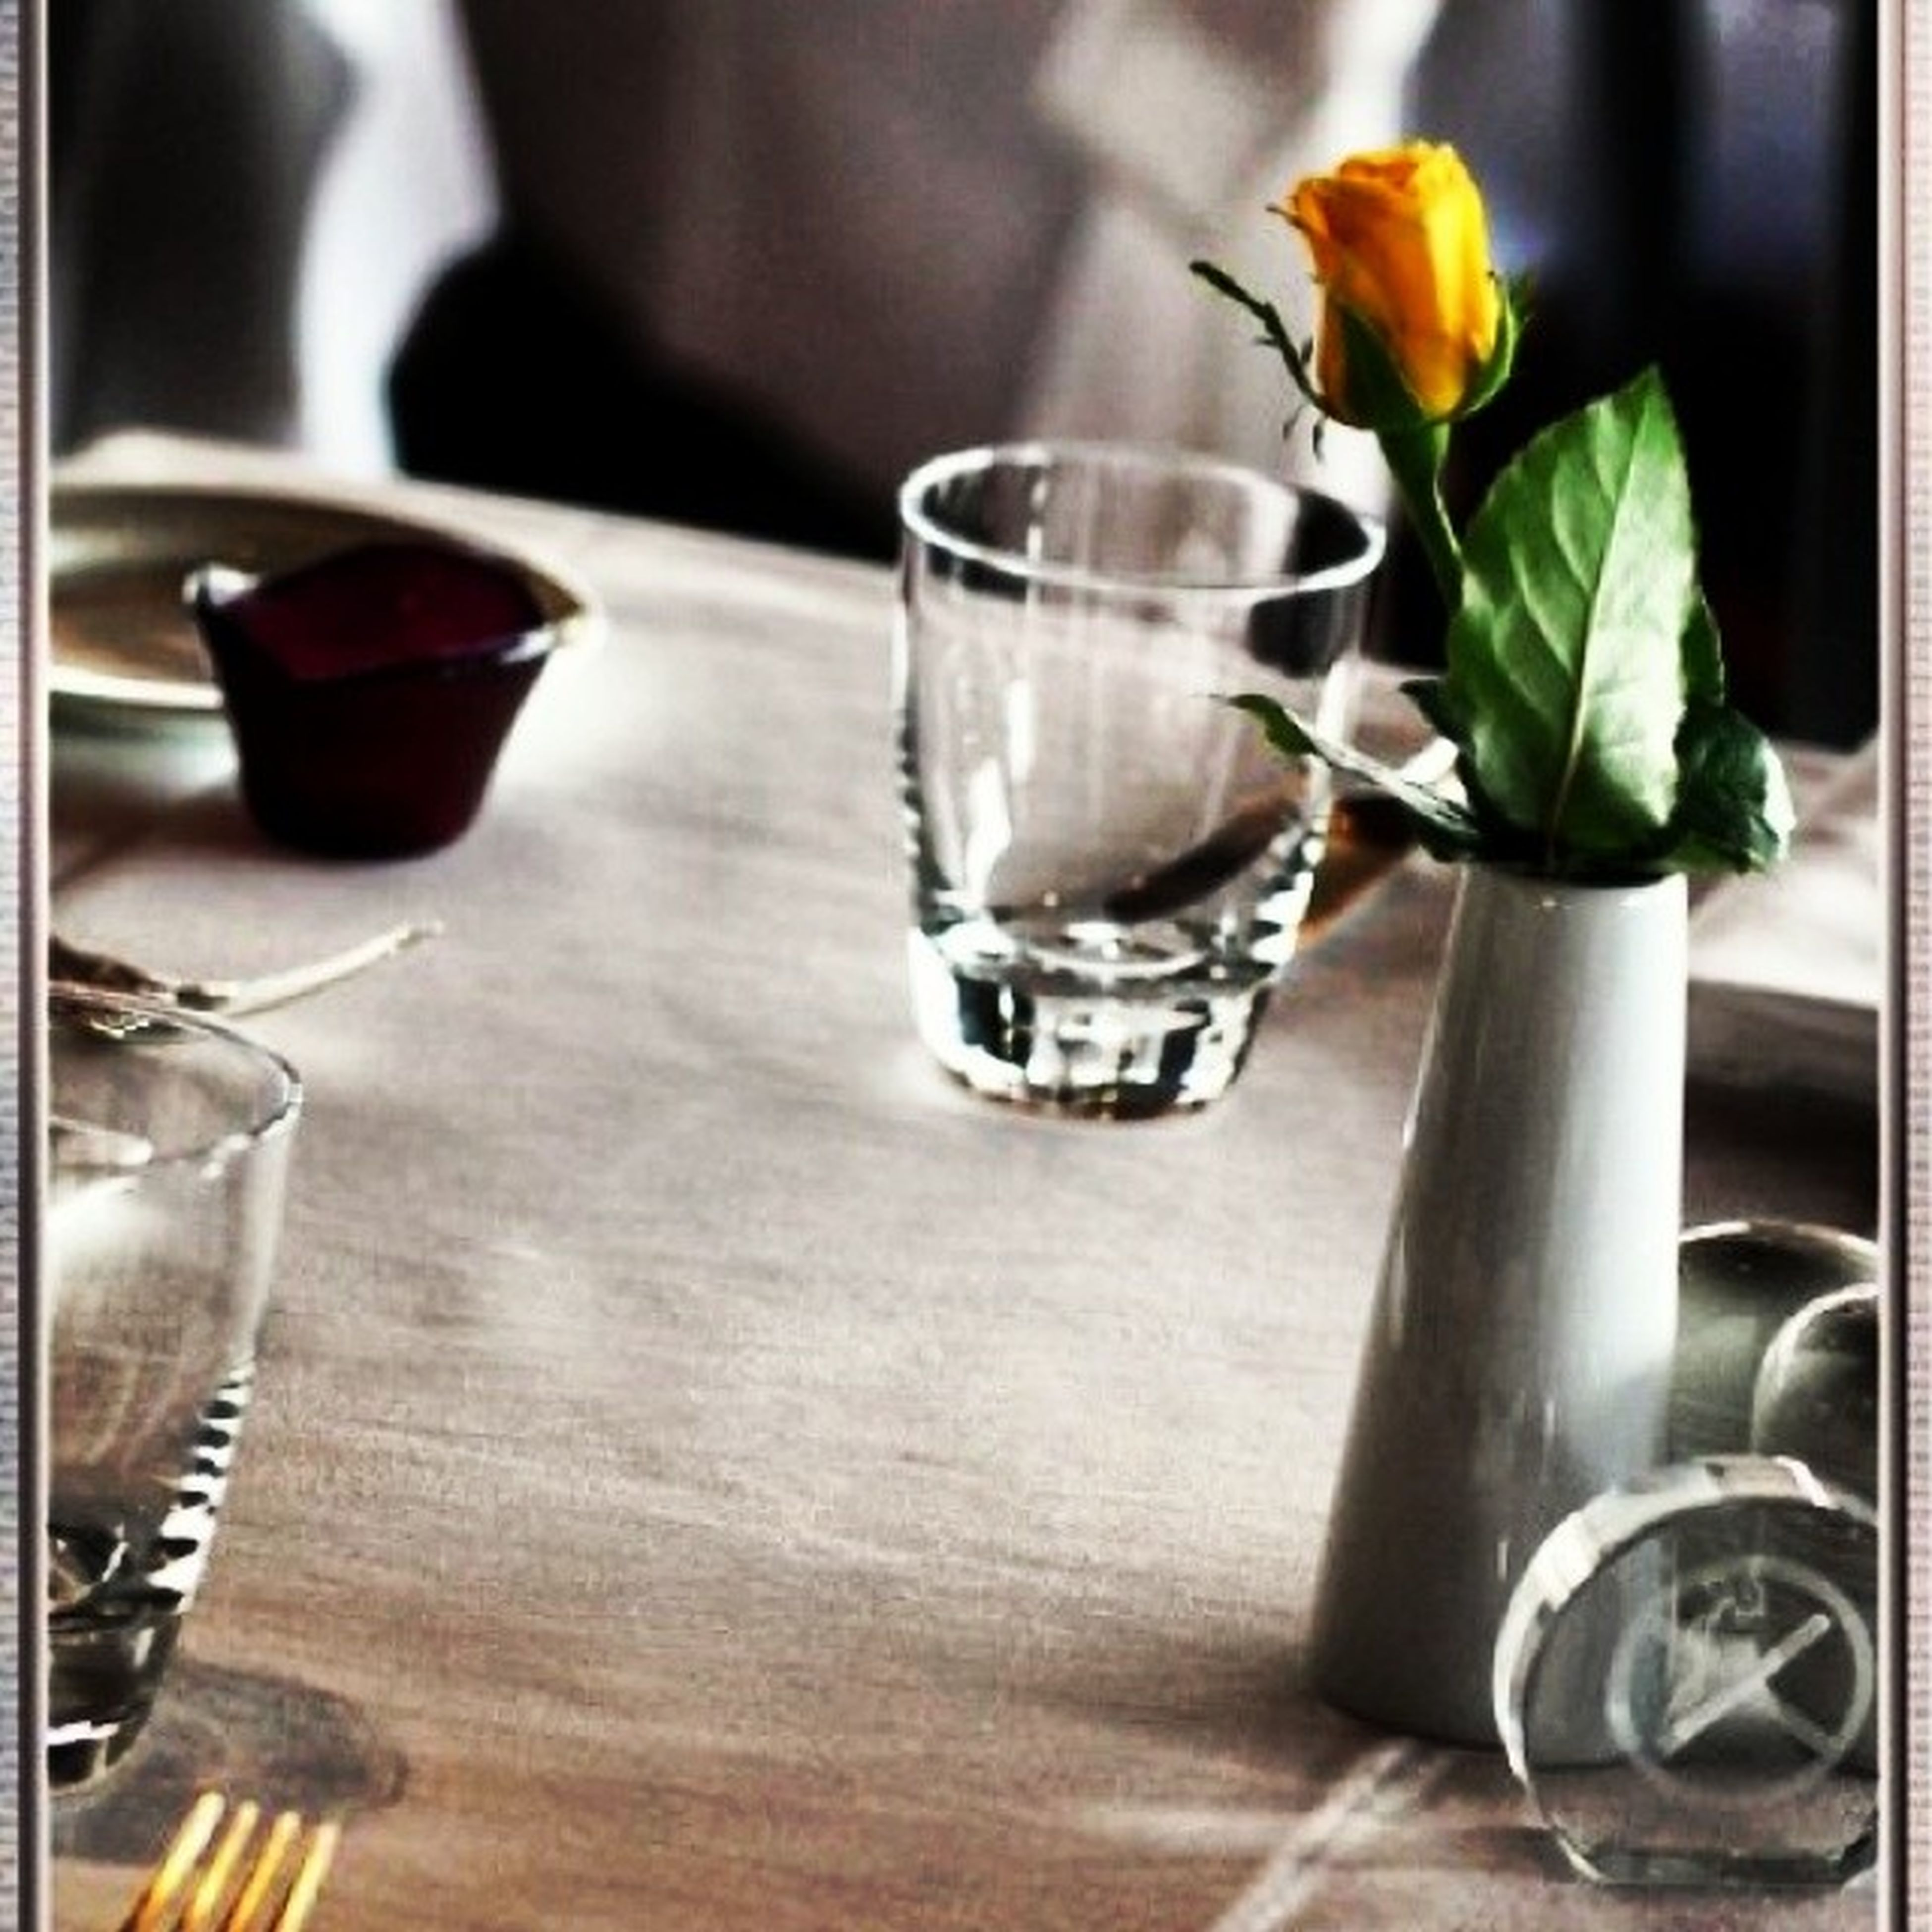 indoors, table, still life, freshness, vase, flower, food and drink, glass - material, close-up, drinking glass, home interior, drink, focus on foreground, bottle, restaurant, selective focus, no people, glass, potted plant, wood - material